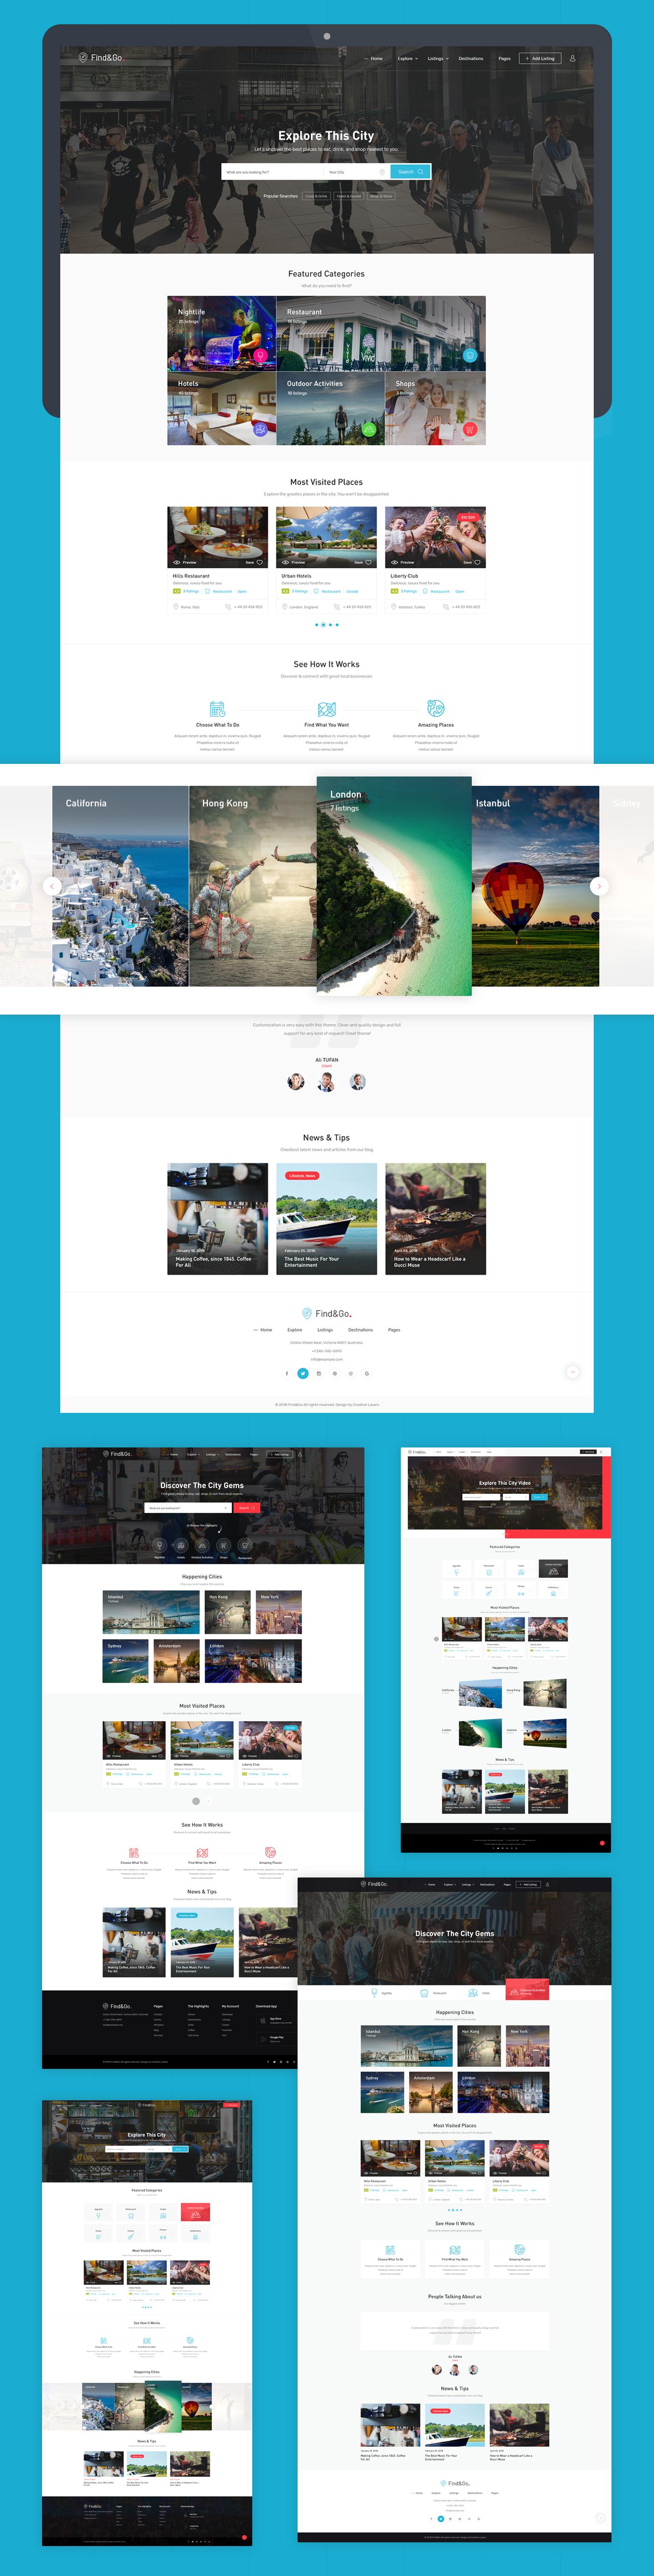 Findgo - Directory Listing WordPress Theme - 3